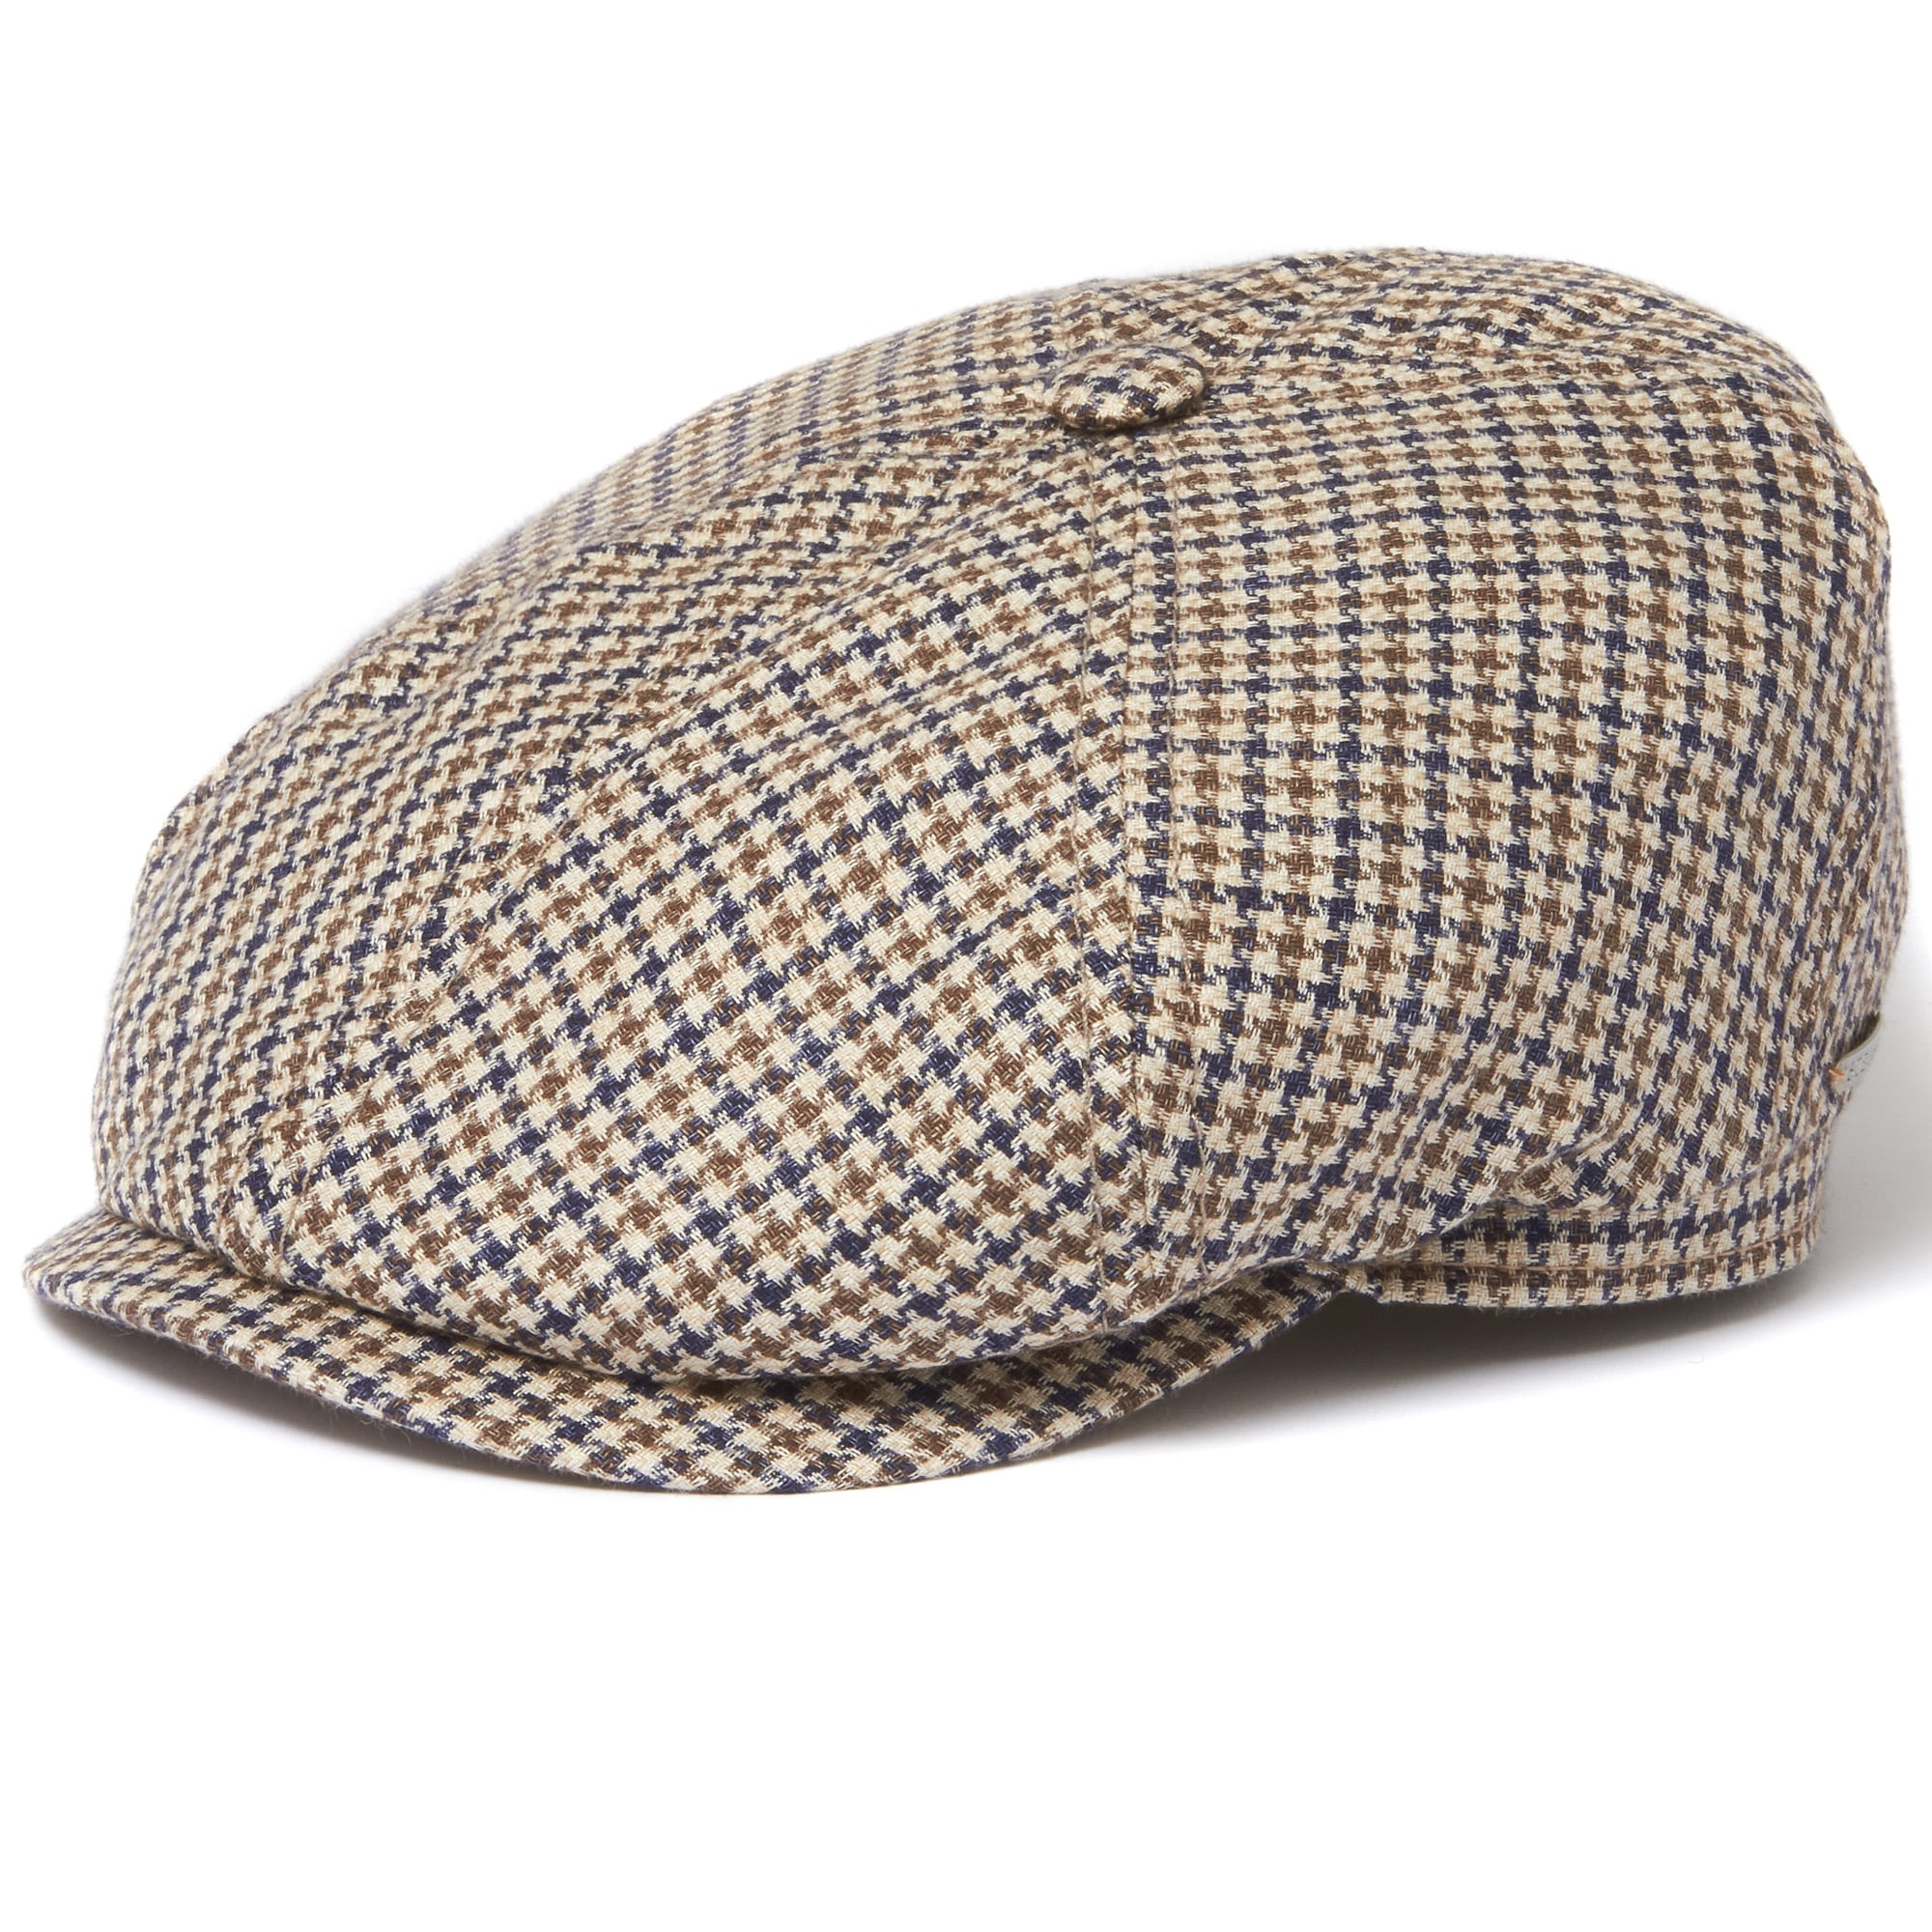 243409d27fa Stetson Houndstooth Narrow Check 6-Panel Flat Cap